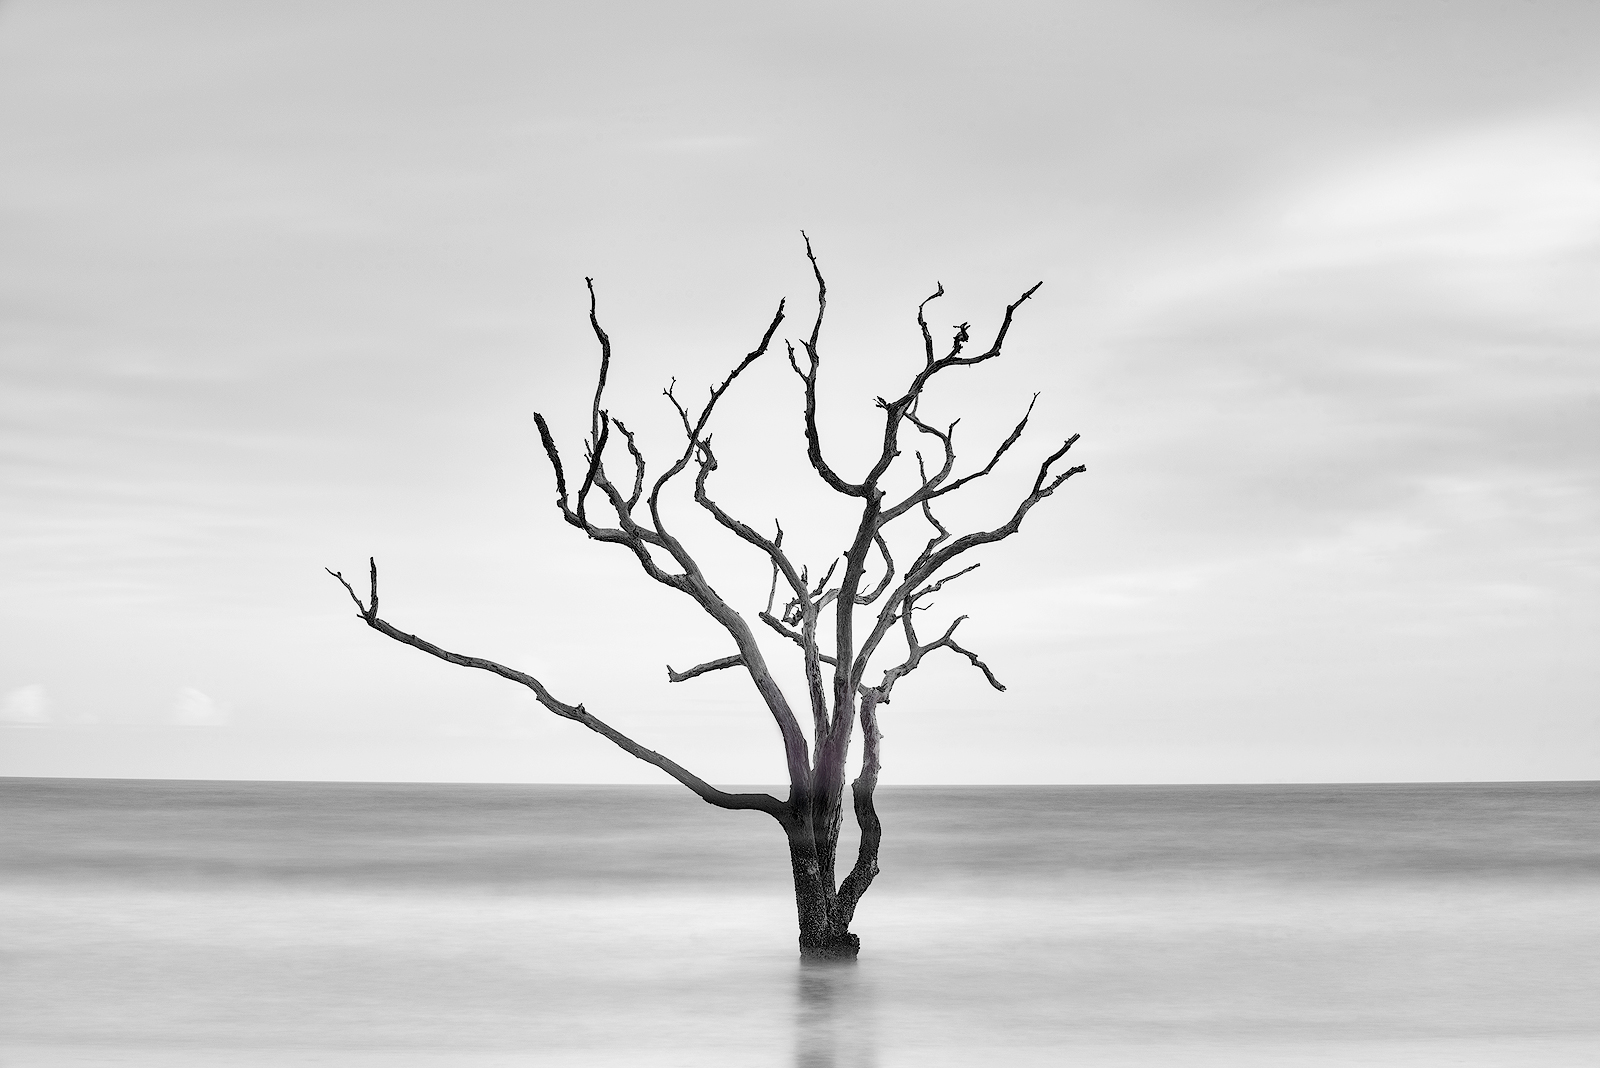 south carolina, edisto island, boneyard beach, black and white, simplicity, lone tree, beach, sand, sunrise, low country, botany bay plantation, photo